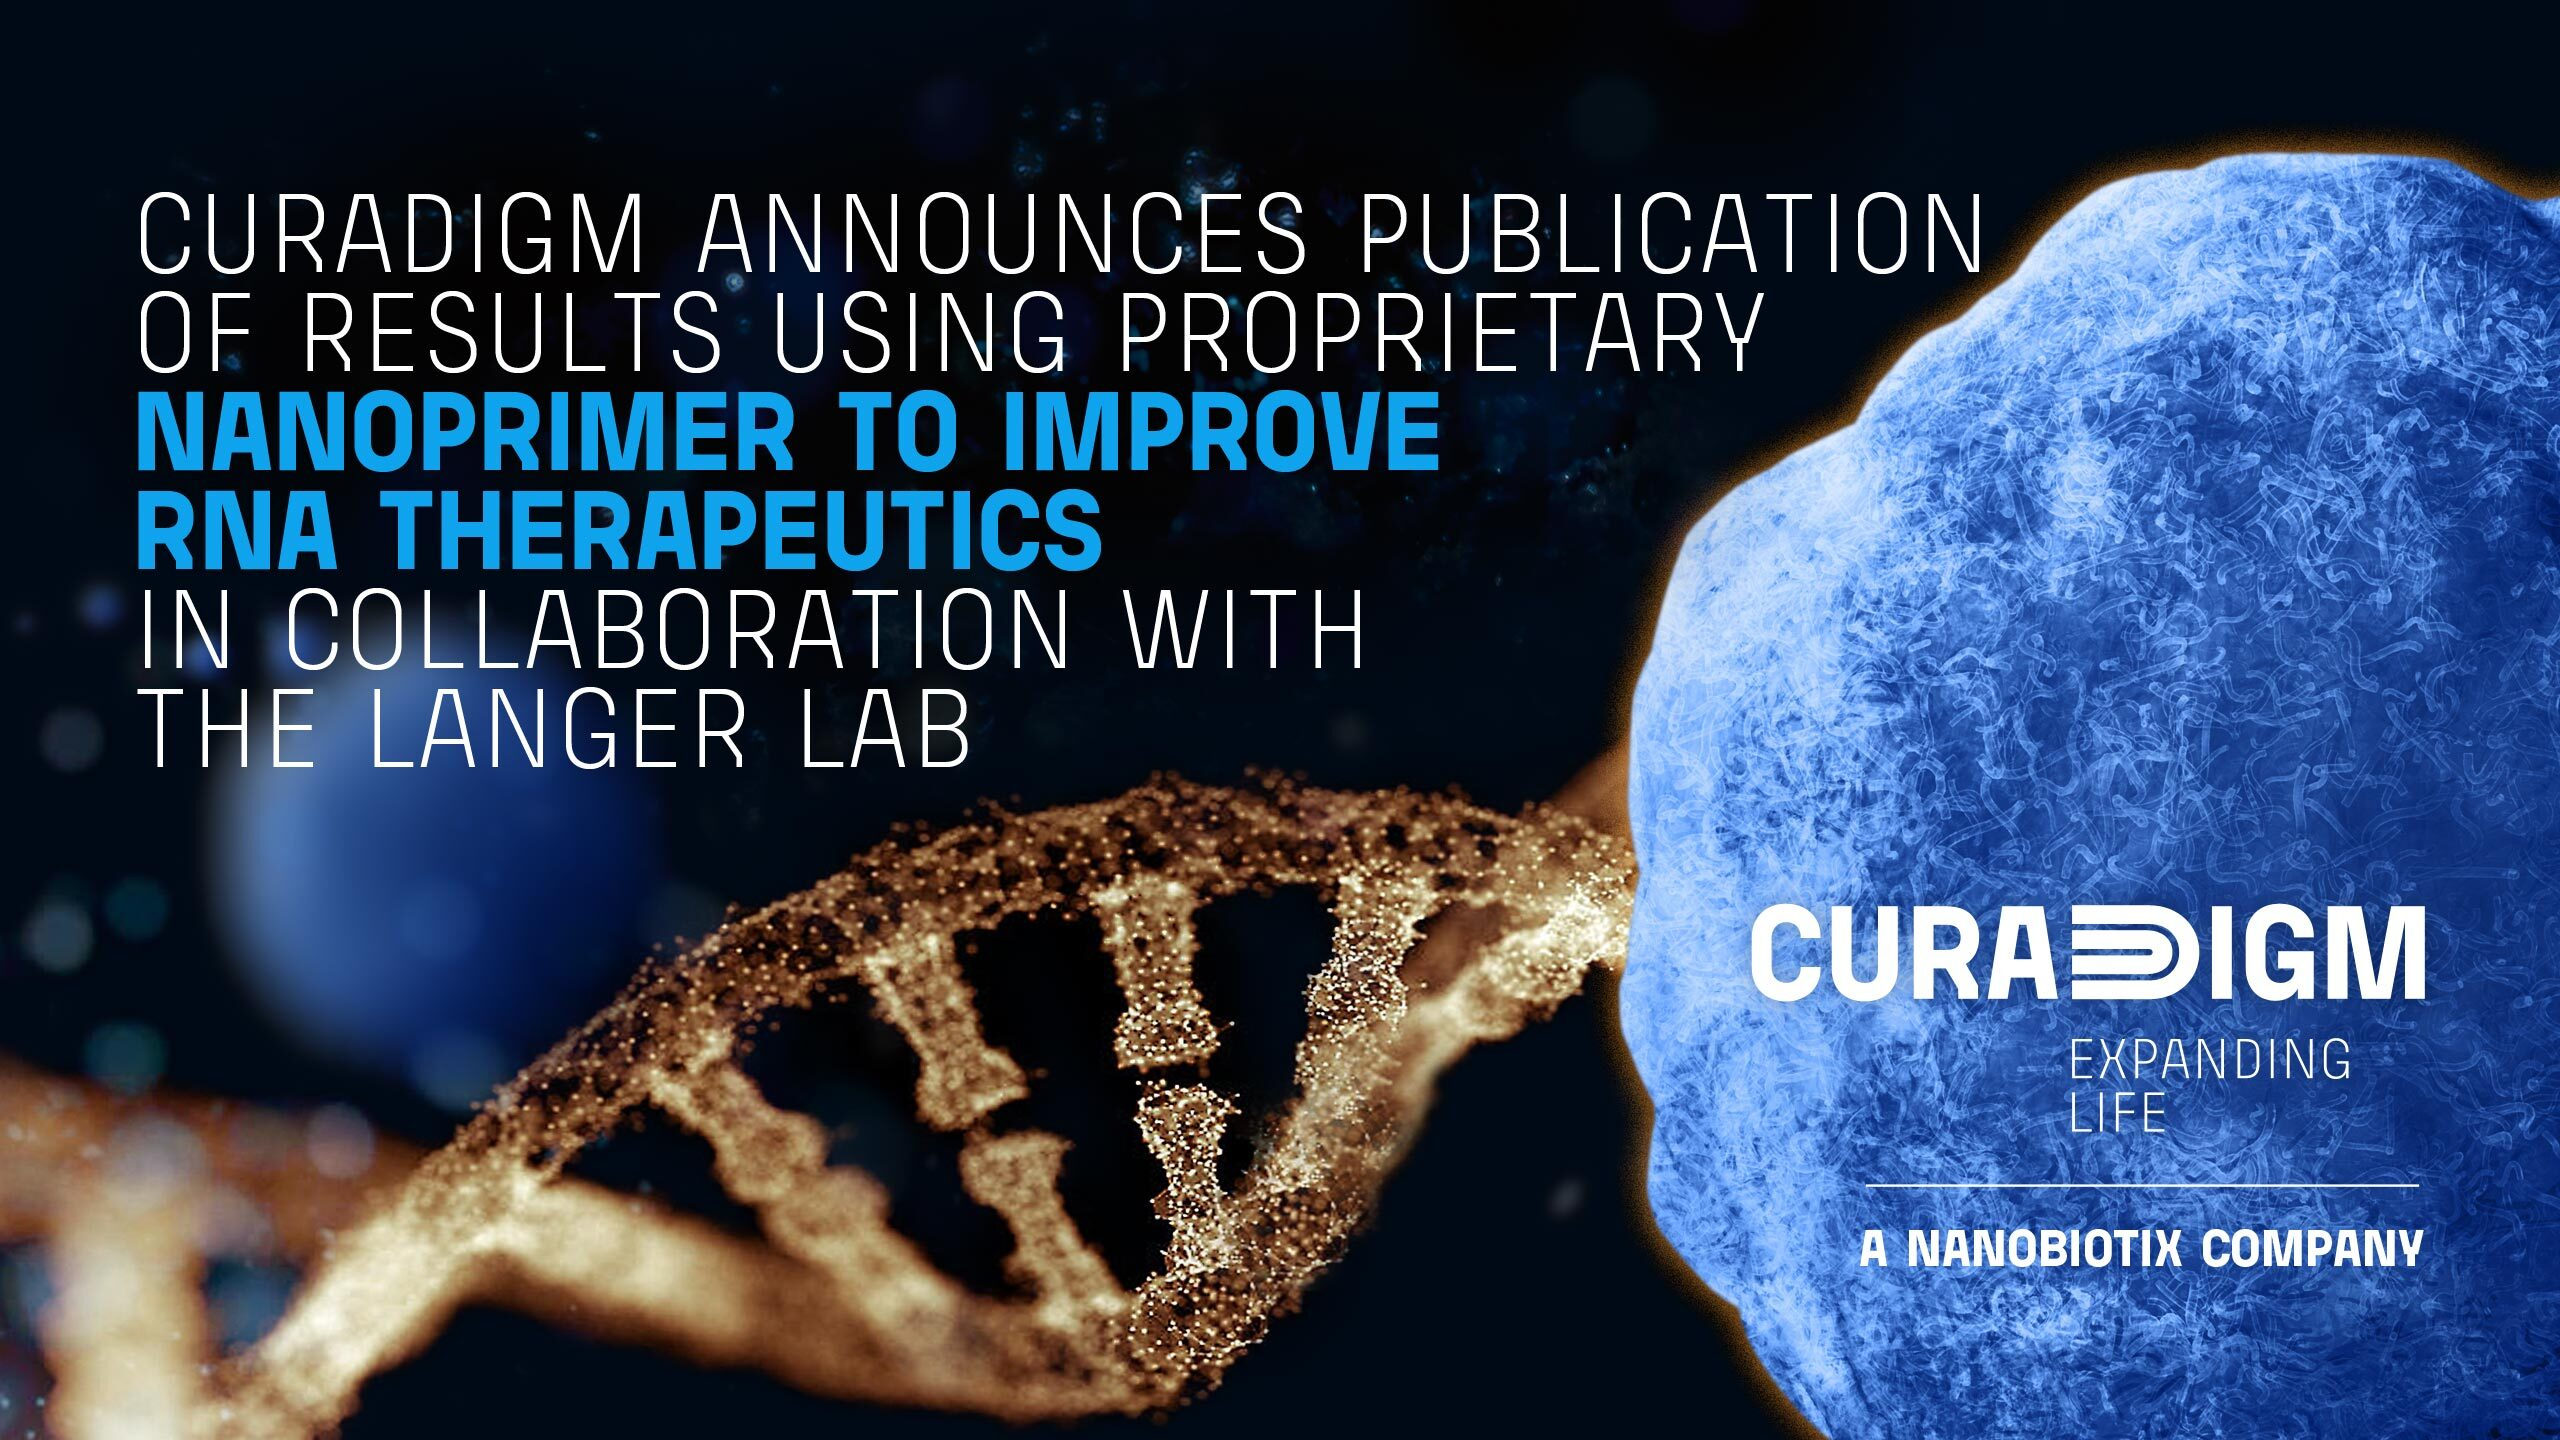 CURADIGM ANNOUNCES PUBLICATION OF RESULTS USING PROPRIETARY NANOPRIMER TO IMPROVE RNA THERAPEUTICS IN COLLABORATION WITH THE LANGER LAB